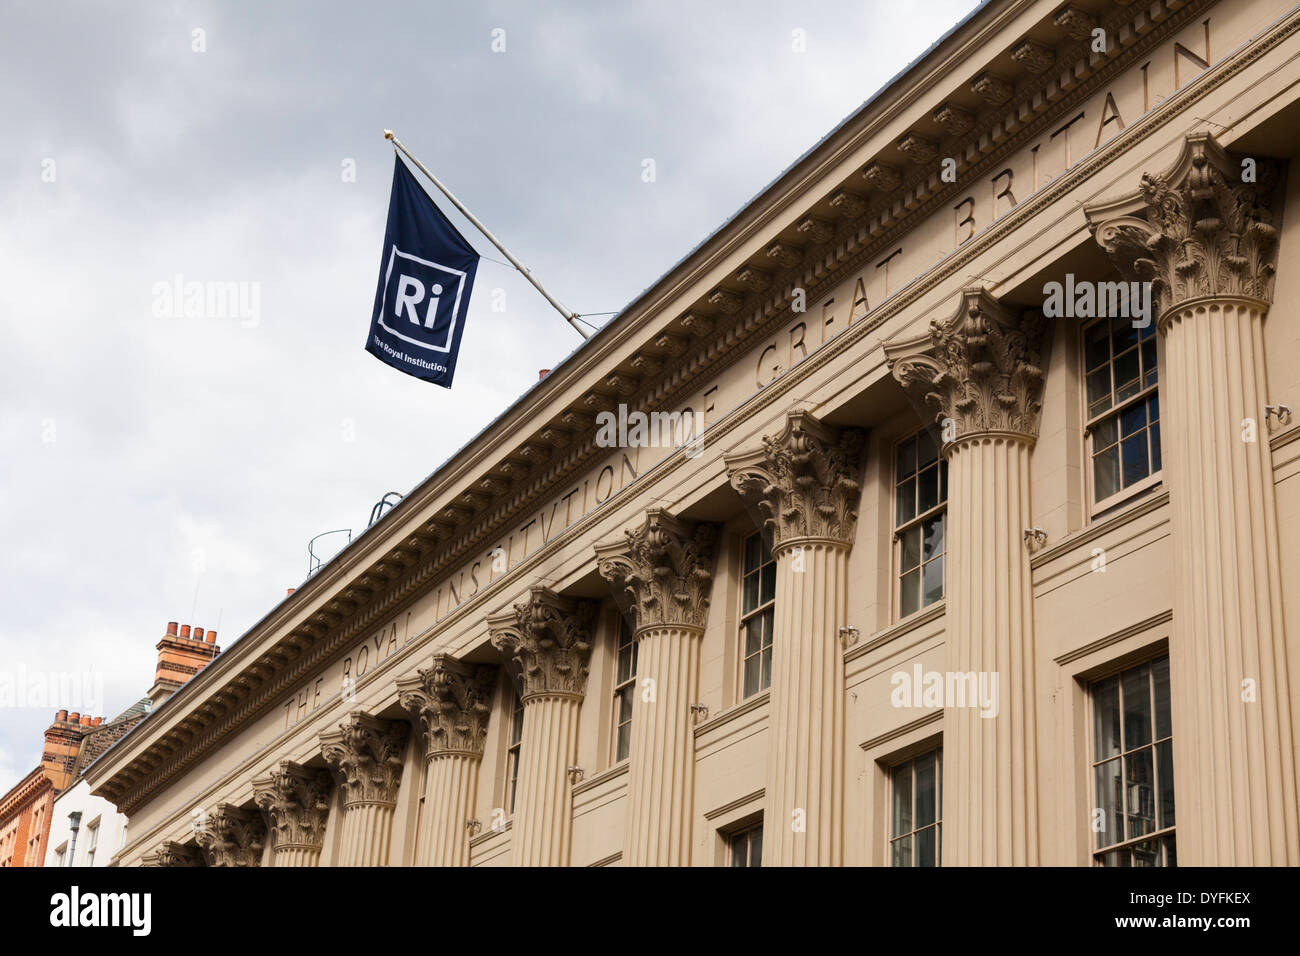 The Royal Institution, Albermarle Street, London. Home of scientific research and communication since Humphry Davy. - Stock Image